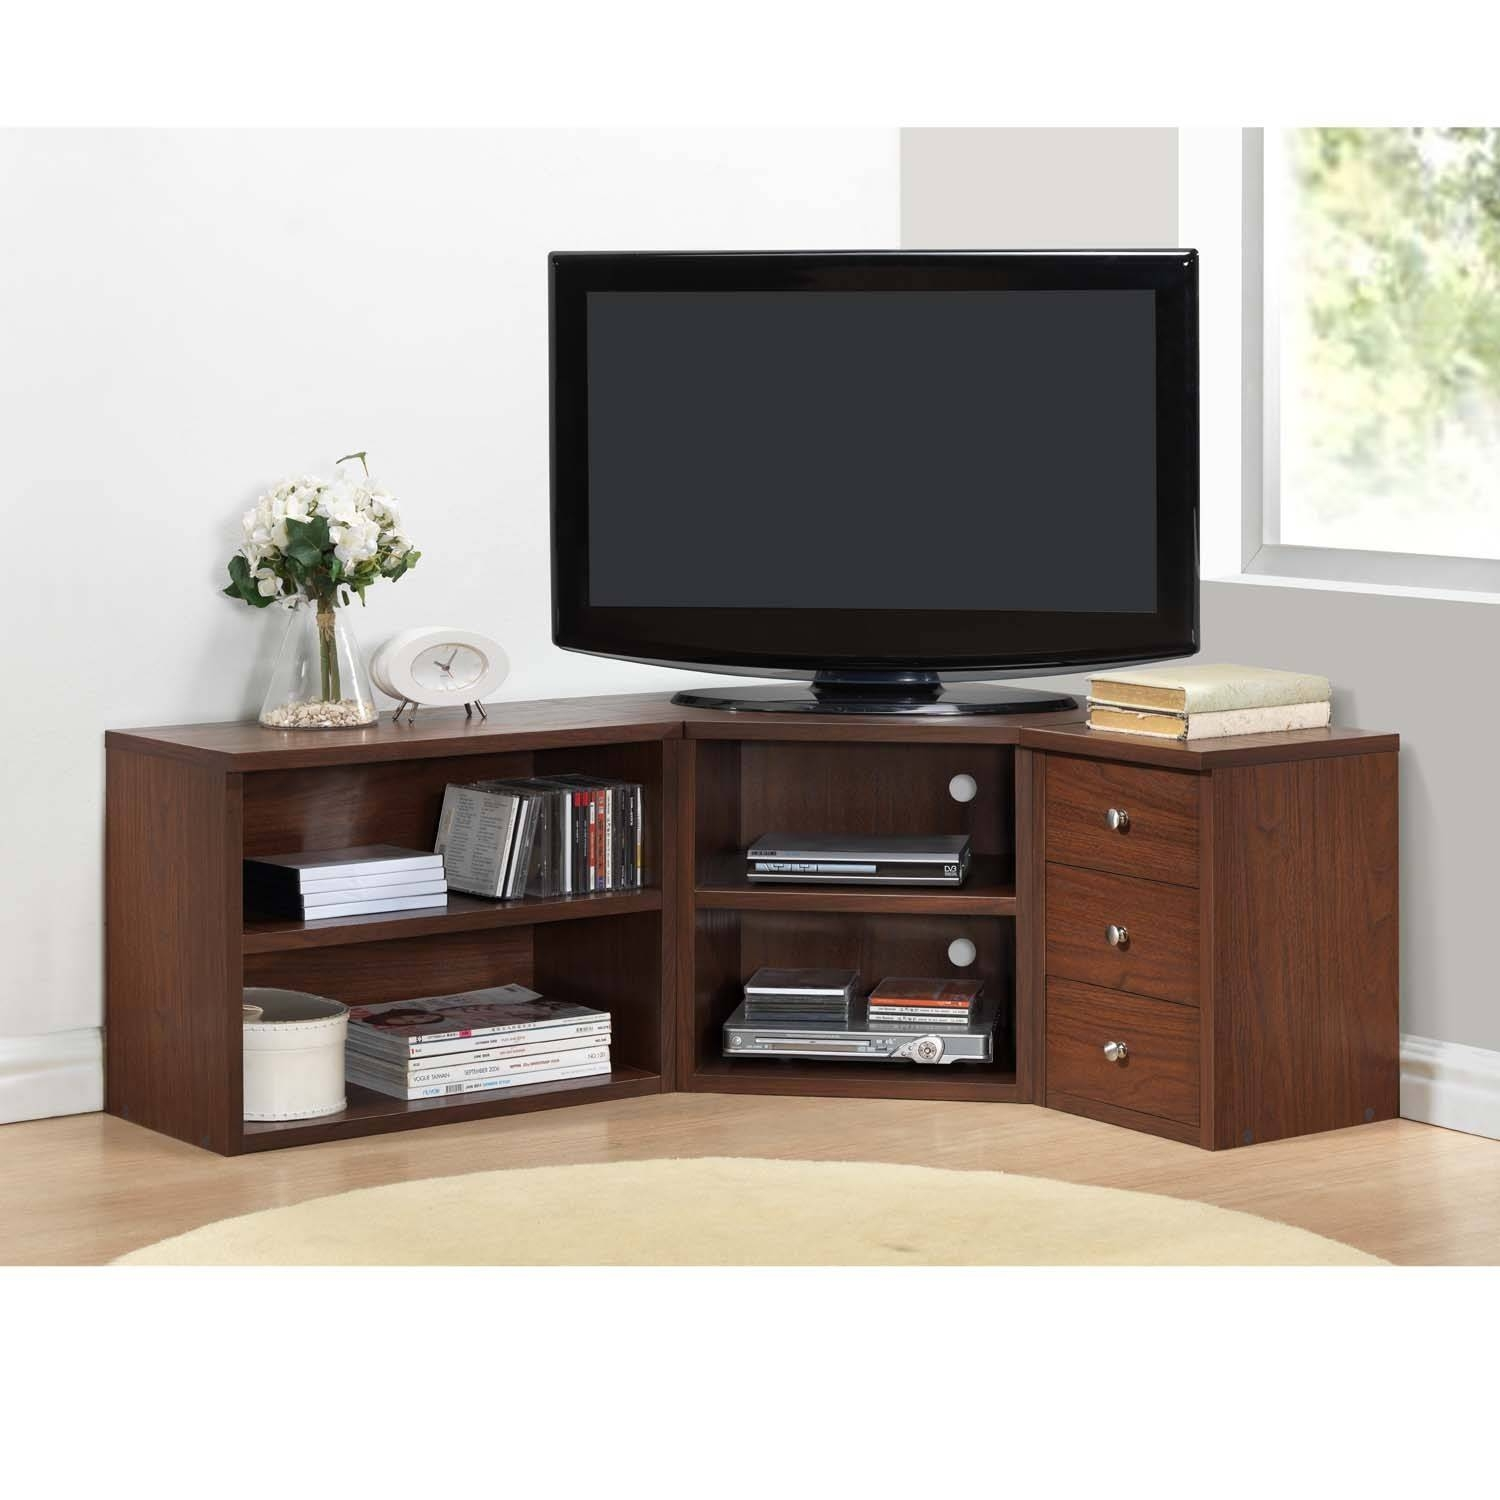 Lacquered Oak Wood Corner Tv Stand With Drawers Cabinet Of Stylish regarding Corner Tv Stands With Drawers (Image 7 of 15)